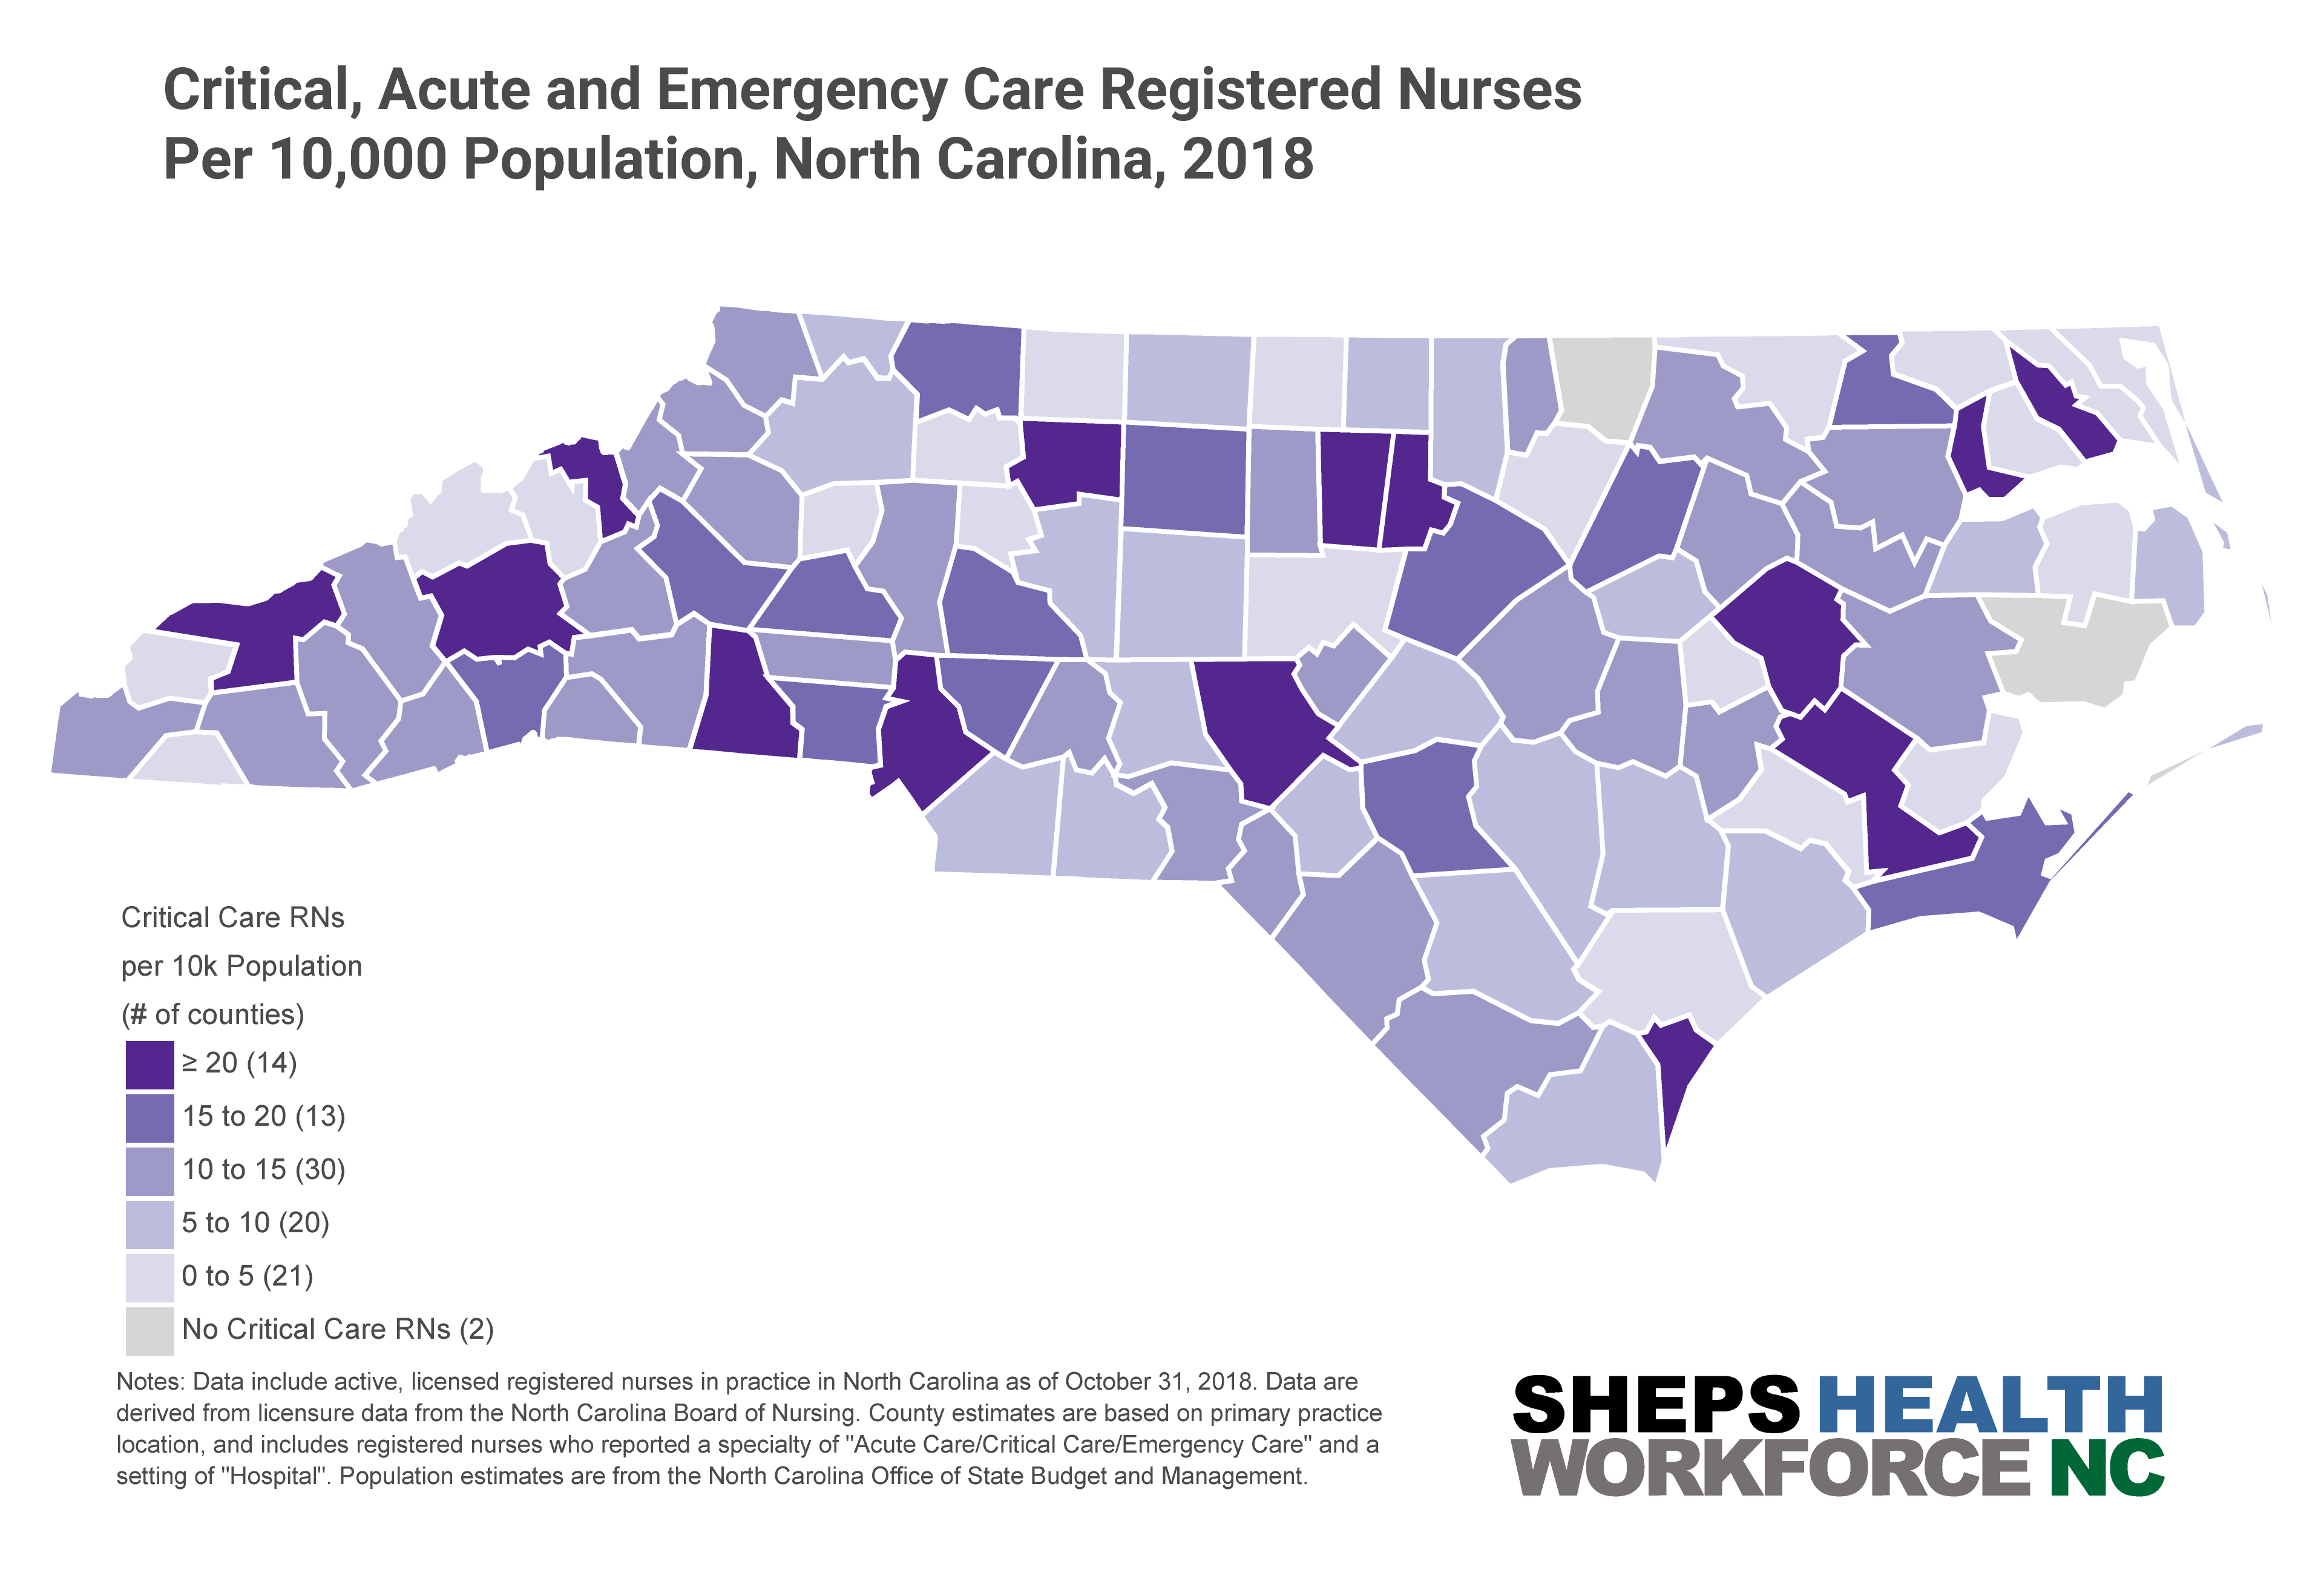 Map of Critical, Acute, and Emergency Care Registered Nurses per 10,000 population by County, North Carolina, 2018.